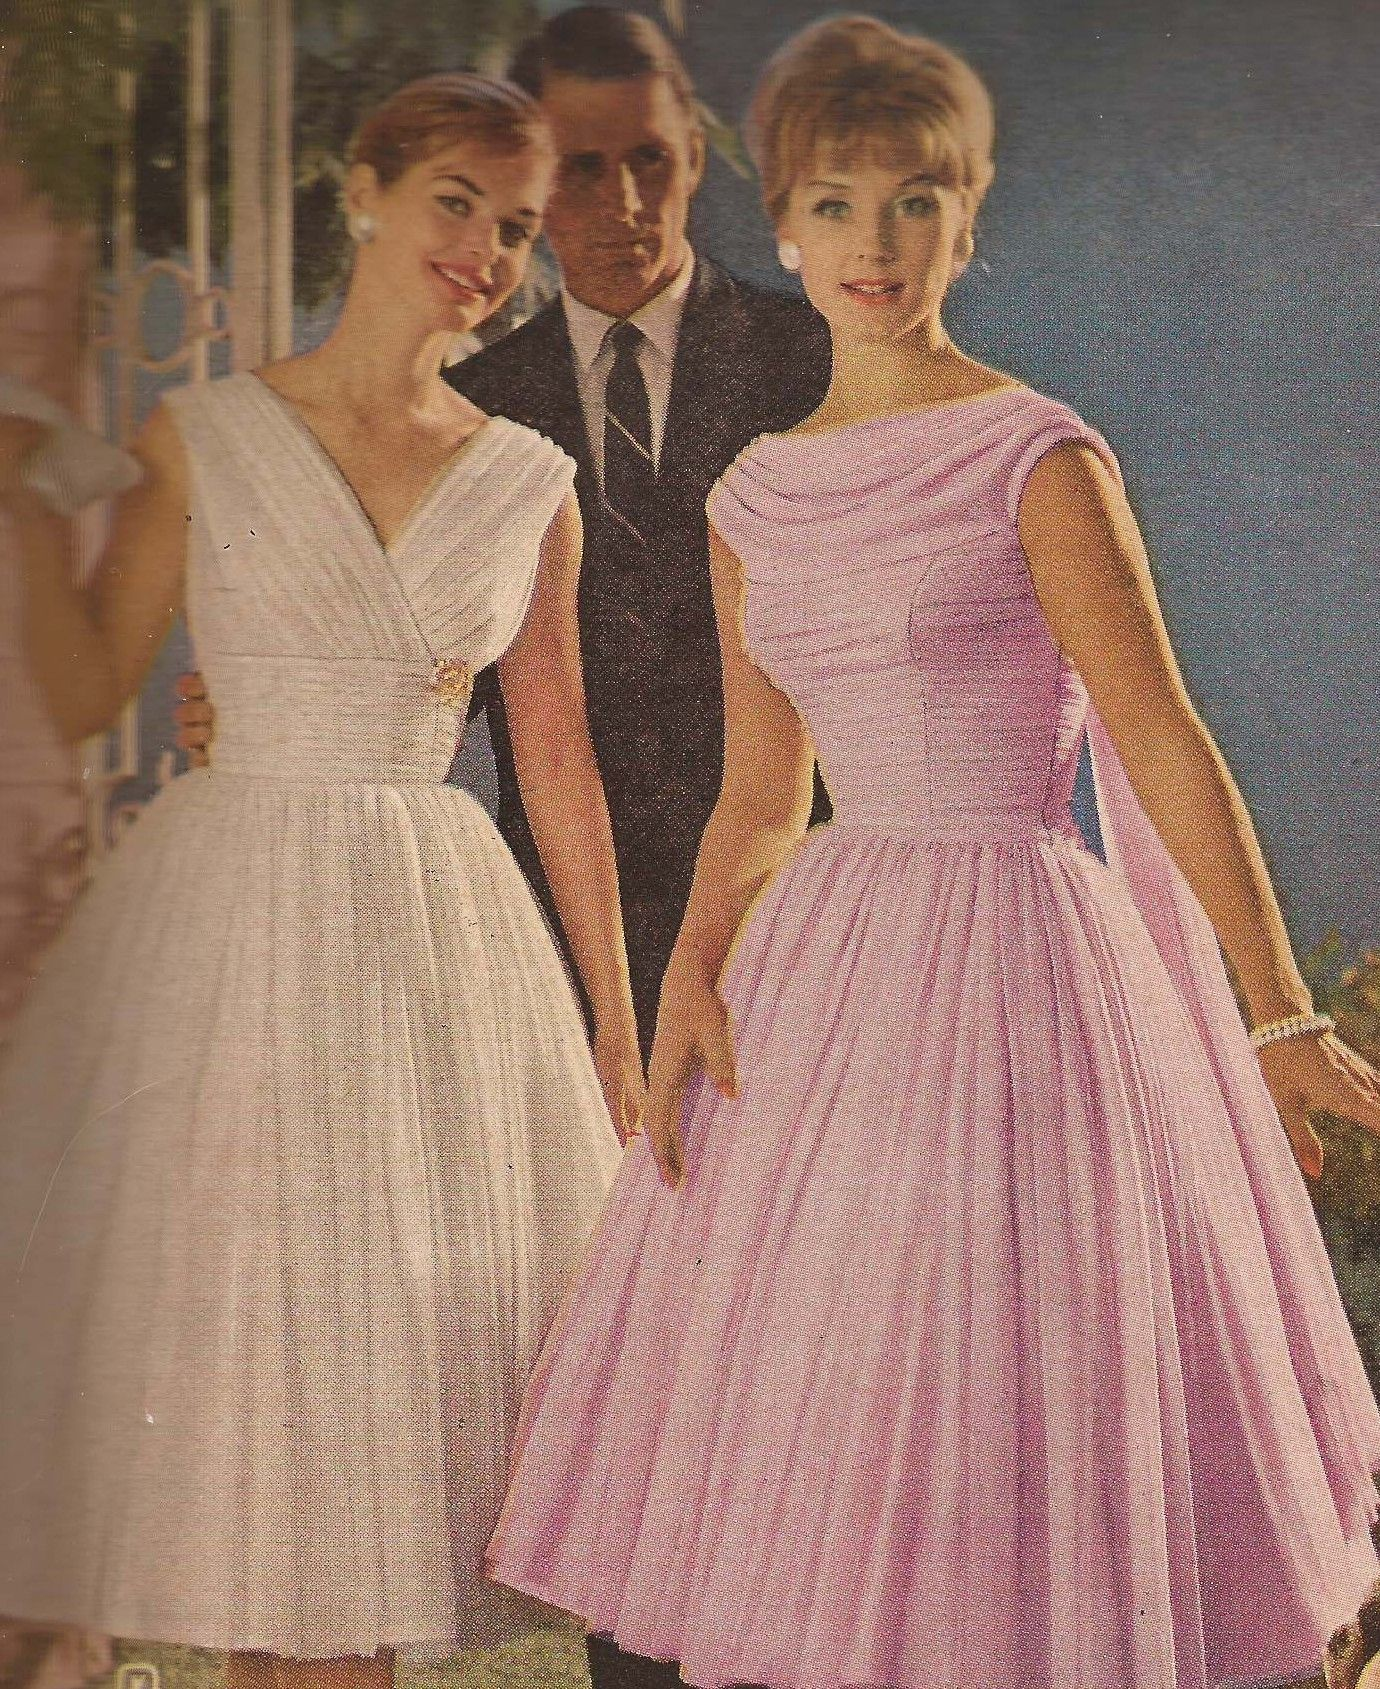 1960 Party Dresses Vintage Fashion Pinterest 1940s Dior And 1960s Clothing